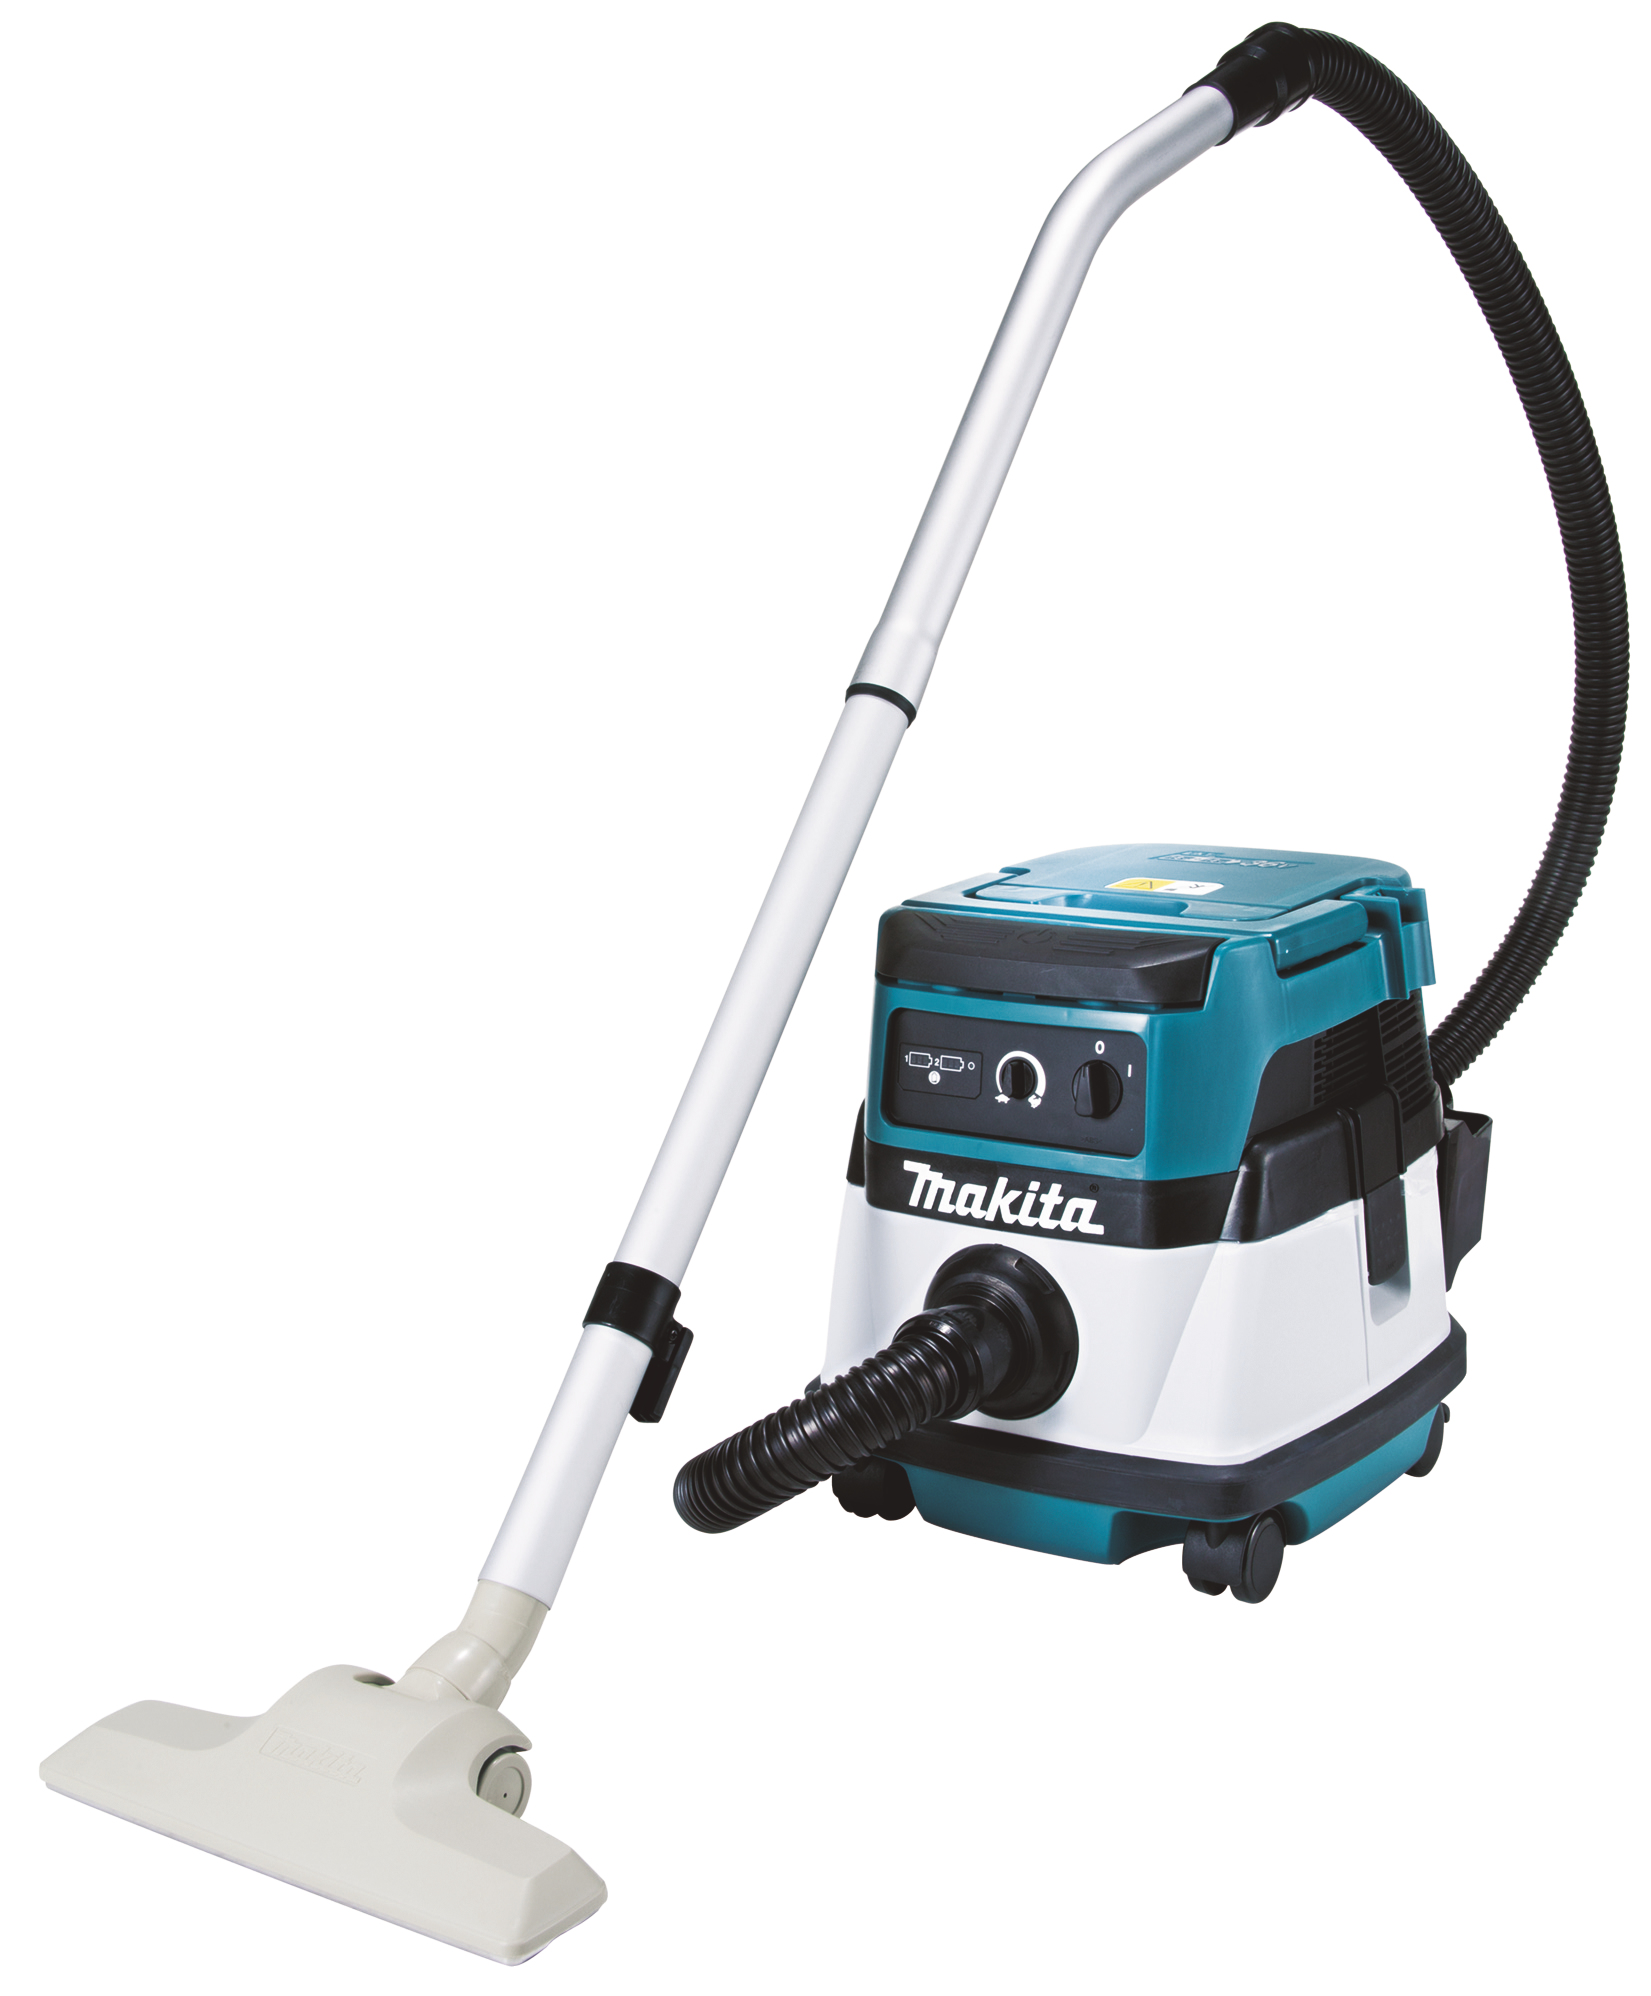 Produktbilde for Makita støvsuger 36V u/ batteri og lader